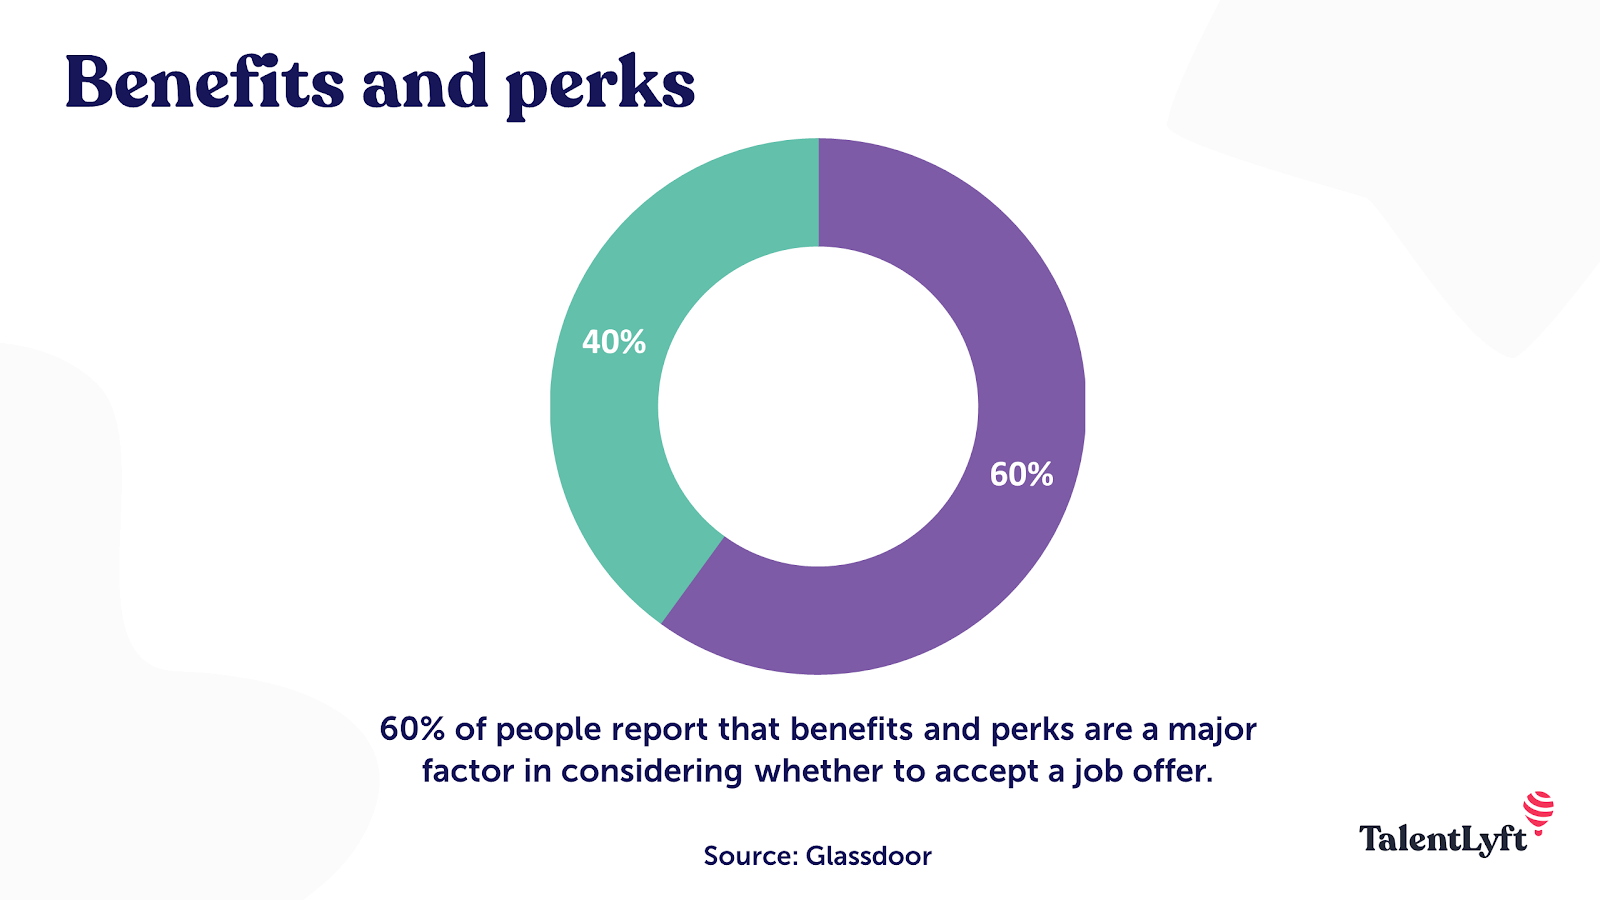 Benefits and perks importance